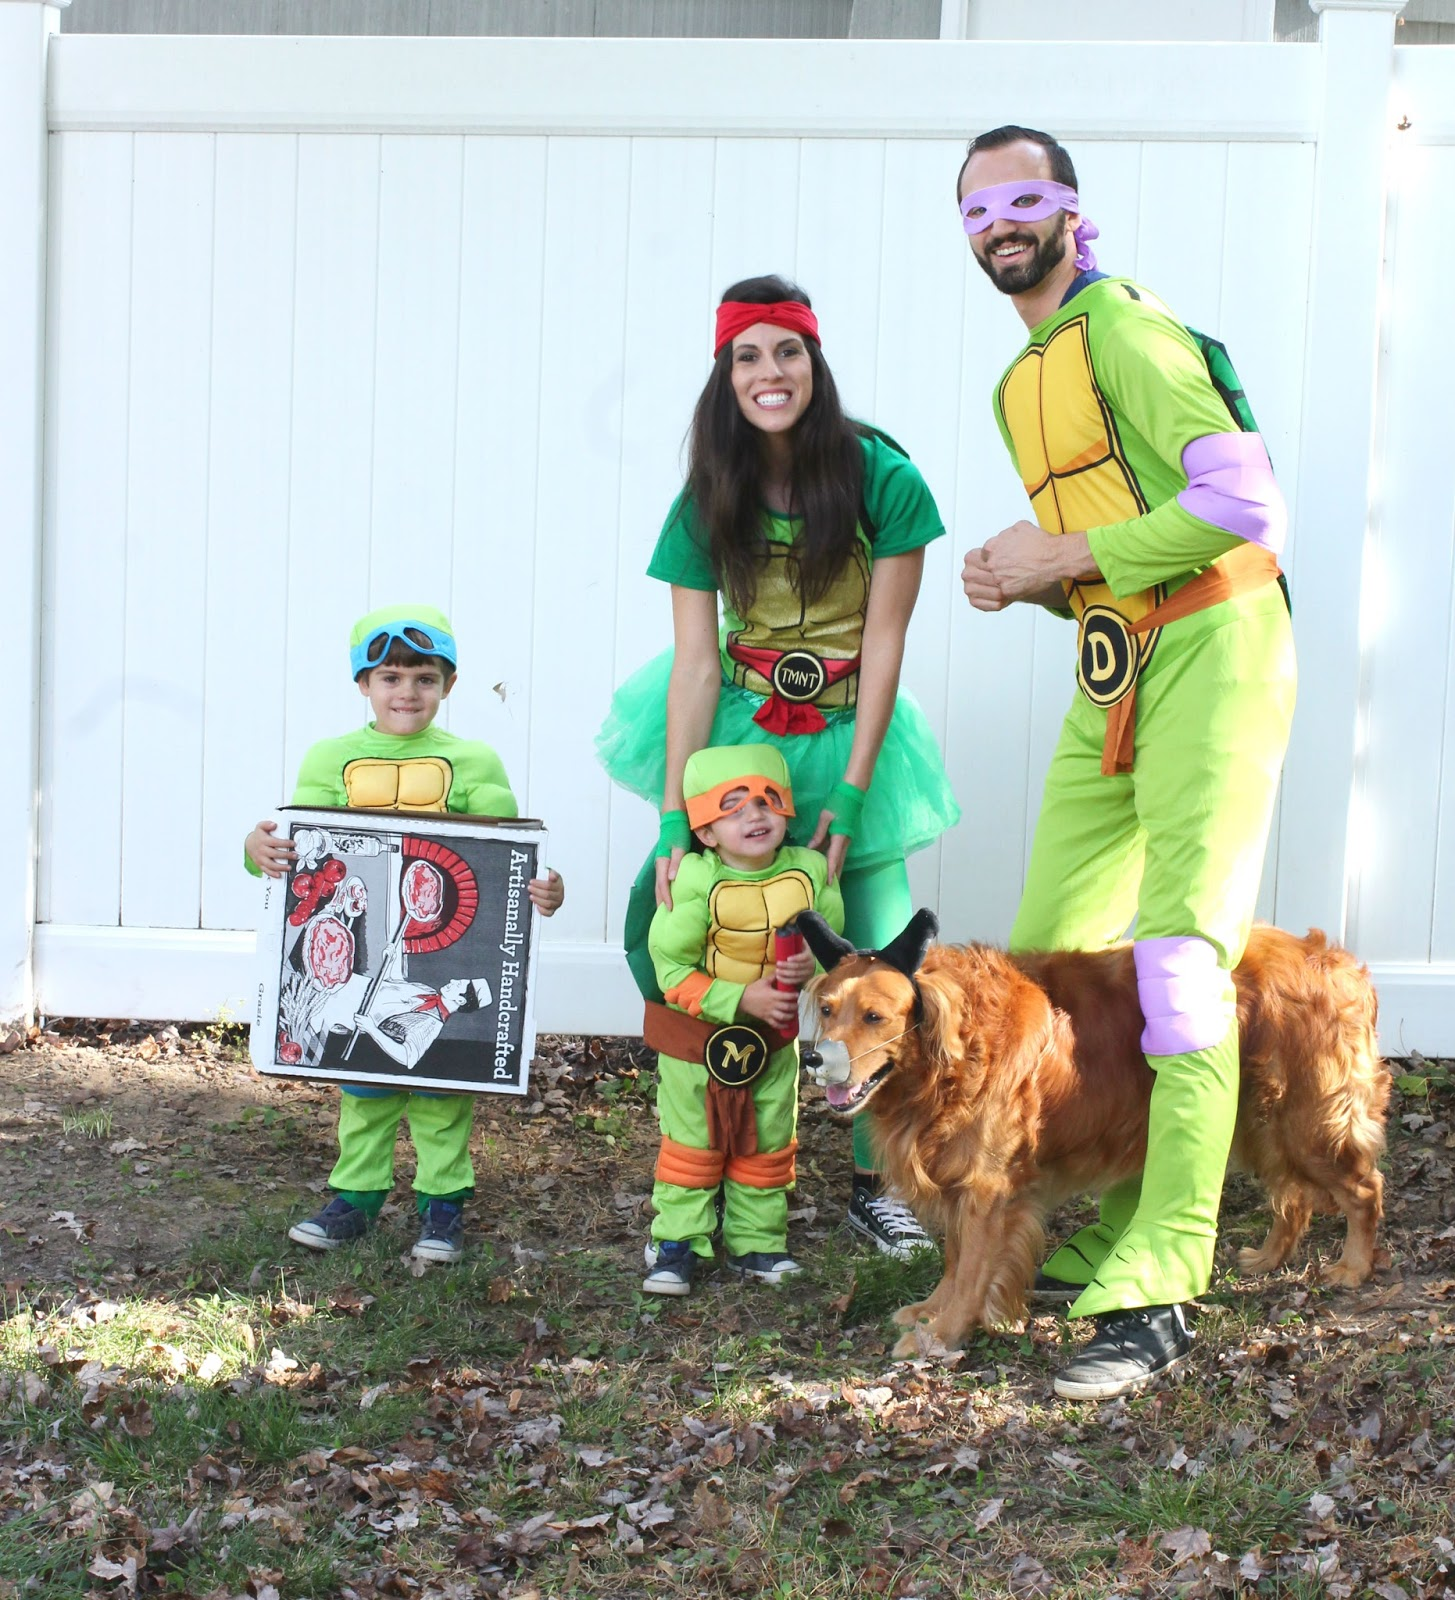 10 Adorably Awesome Halloween Costumes for Family, Kids, and Babies, including this Ninja Turtles Family Costume. Click through for plenty of fun DIY costumes for families. #halloween #halloweencostumeideas #familyhalloweencostume #familyhalloweencostumeideas | glitterinc.com | @glitterinc